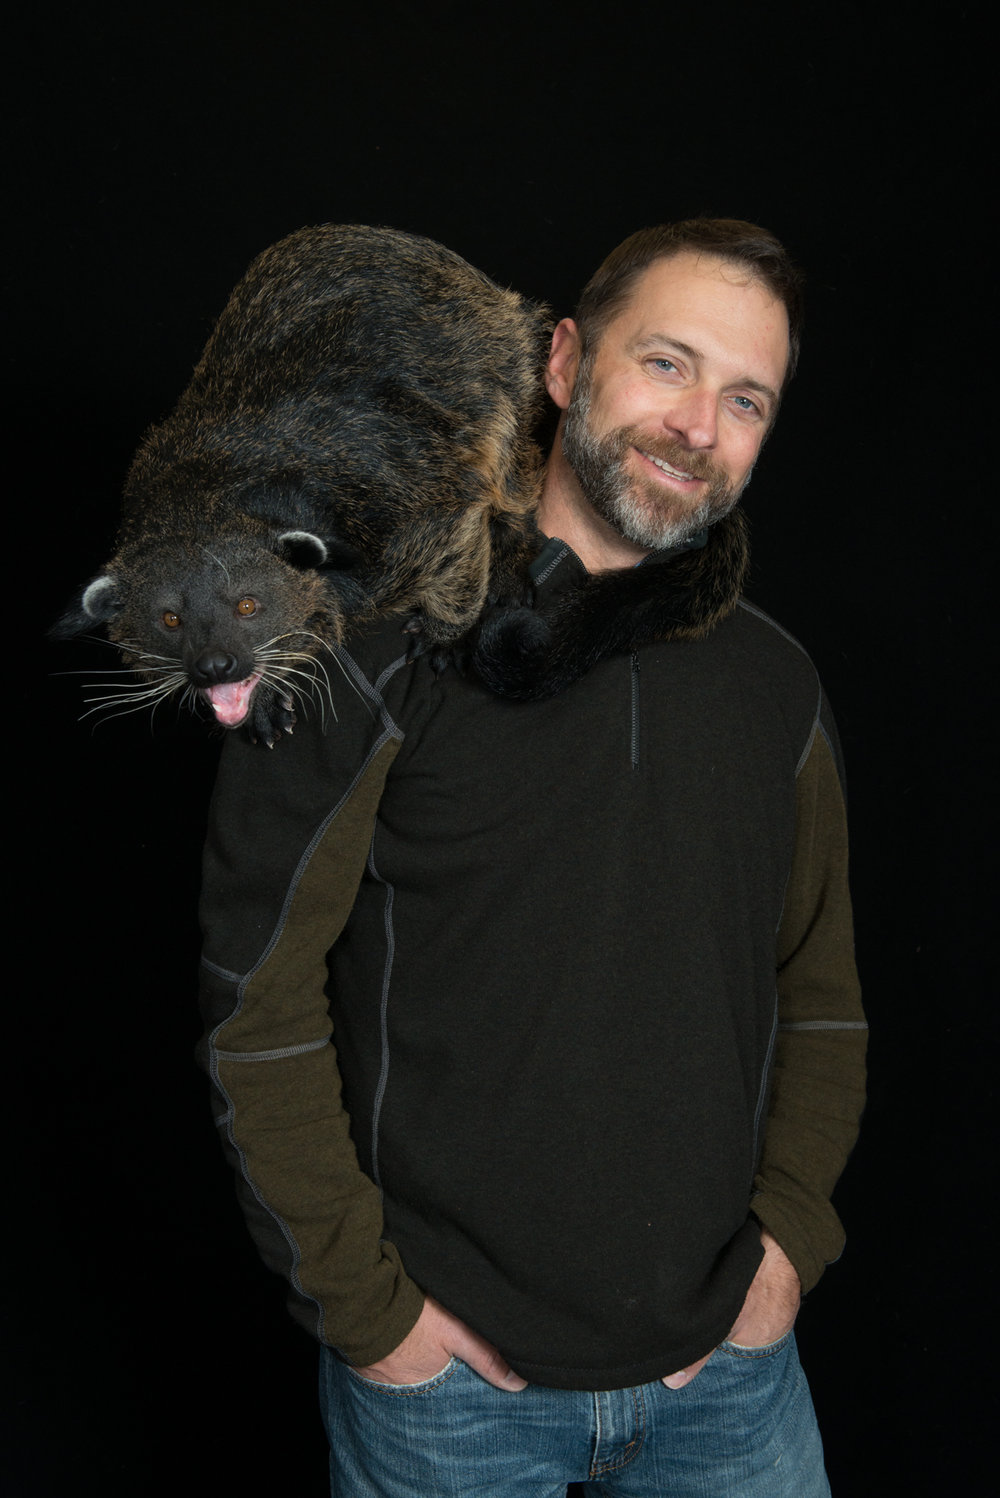 CCAD alum Grahm Jones with a binturong. Photo by Amanda Carberry